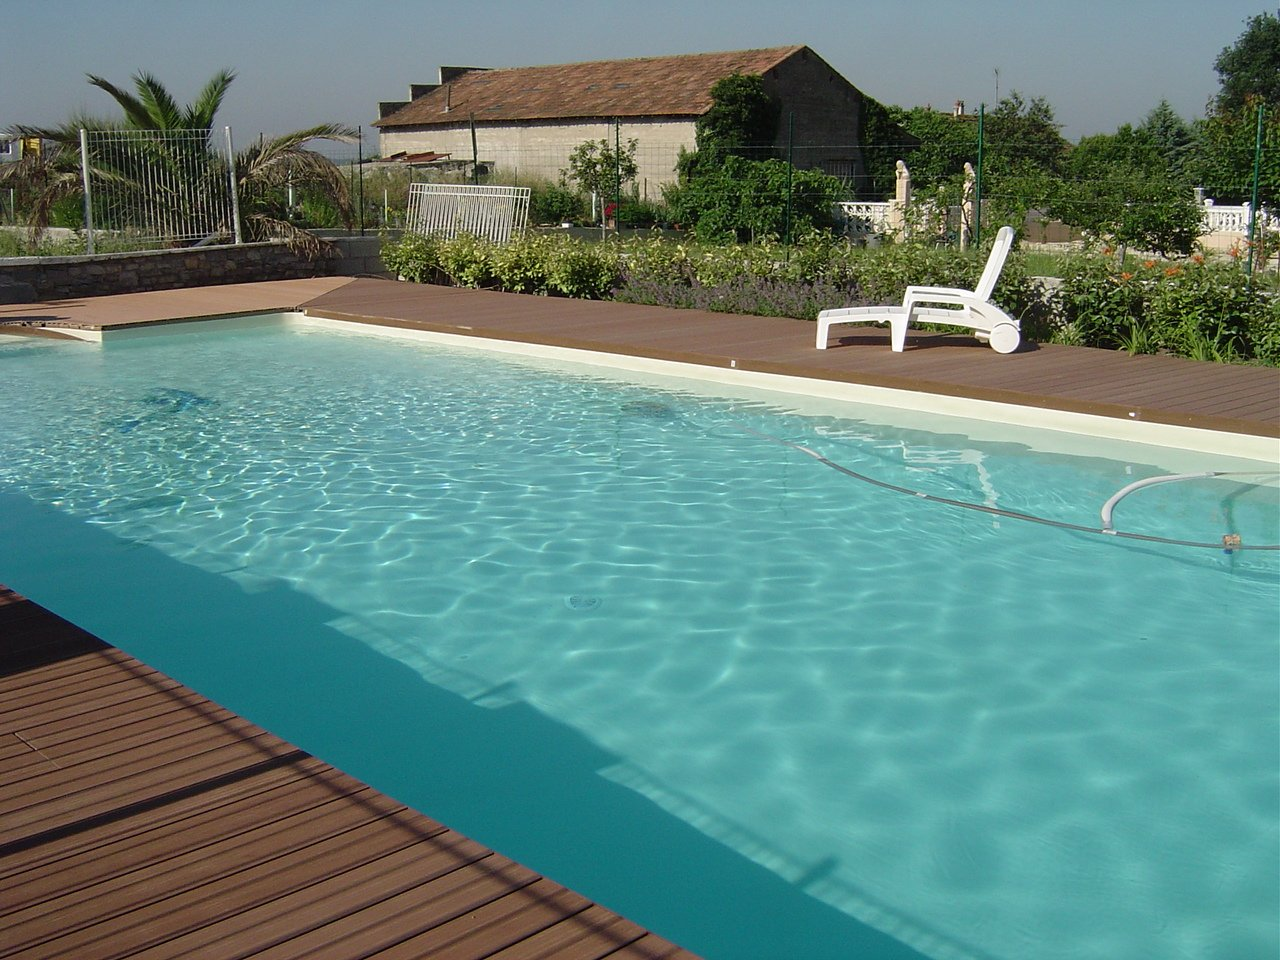 Liner piscine couleur sable for Couleur de liner piscine